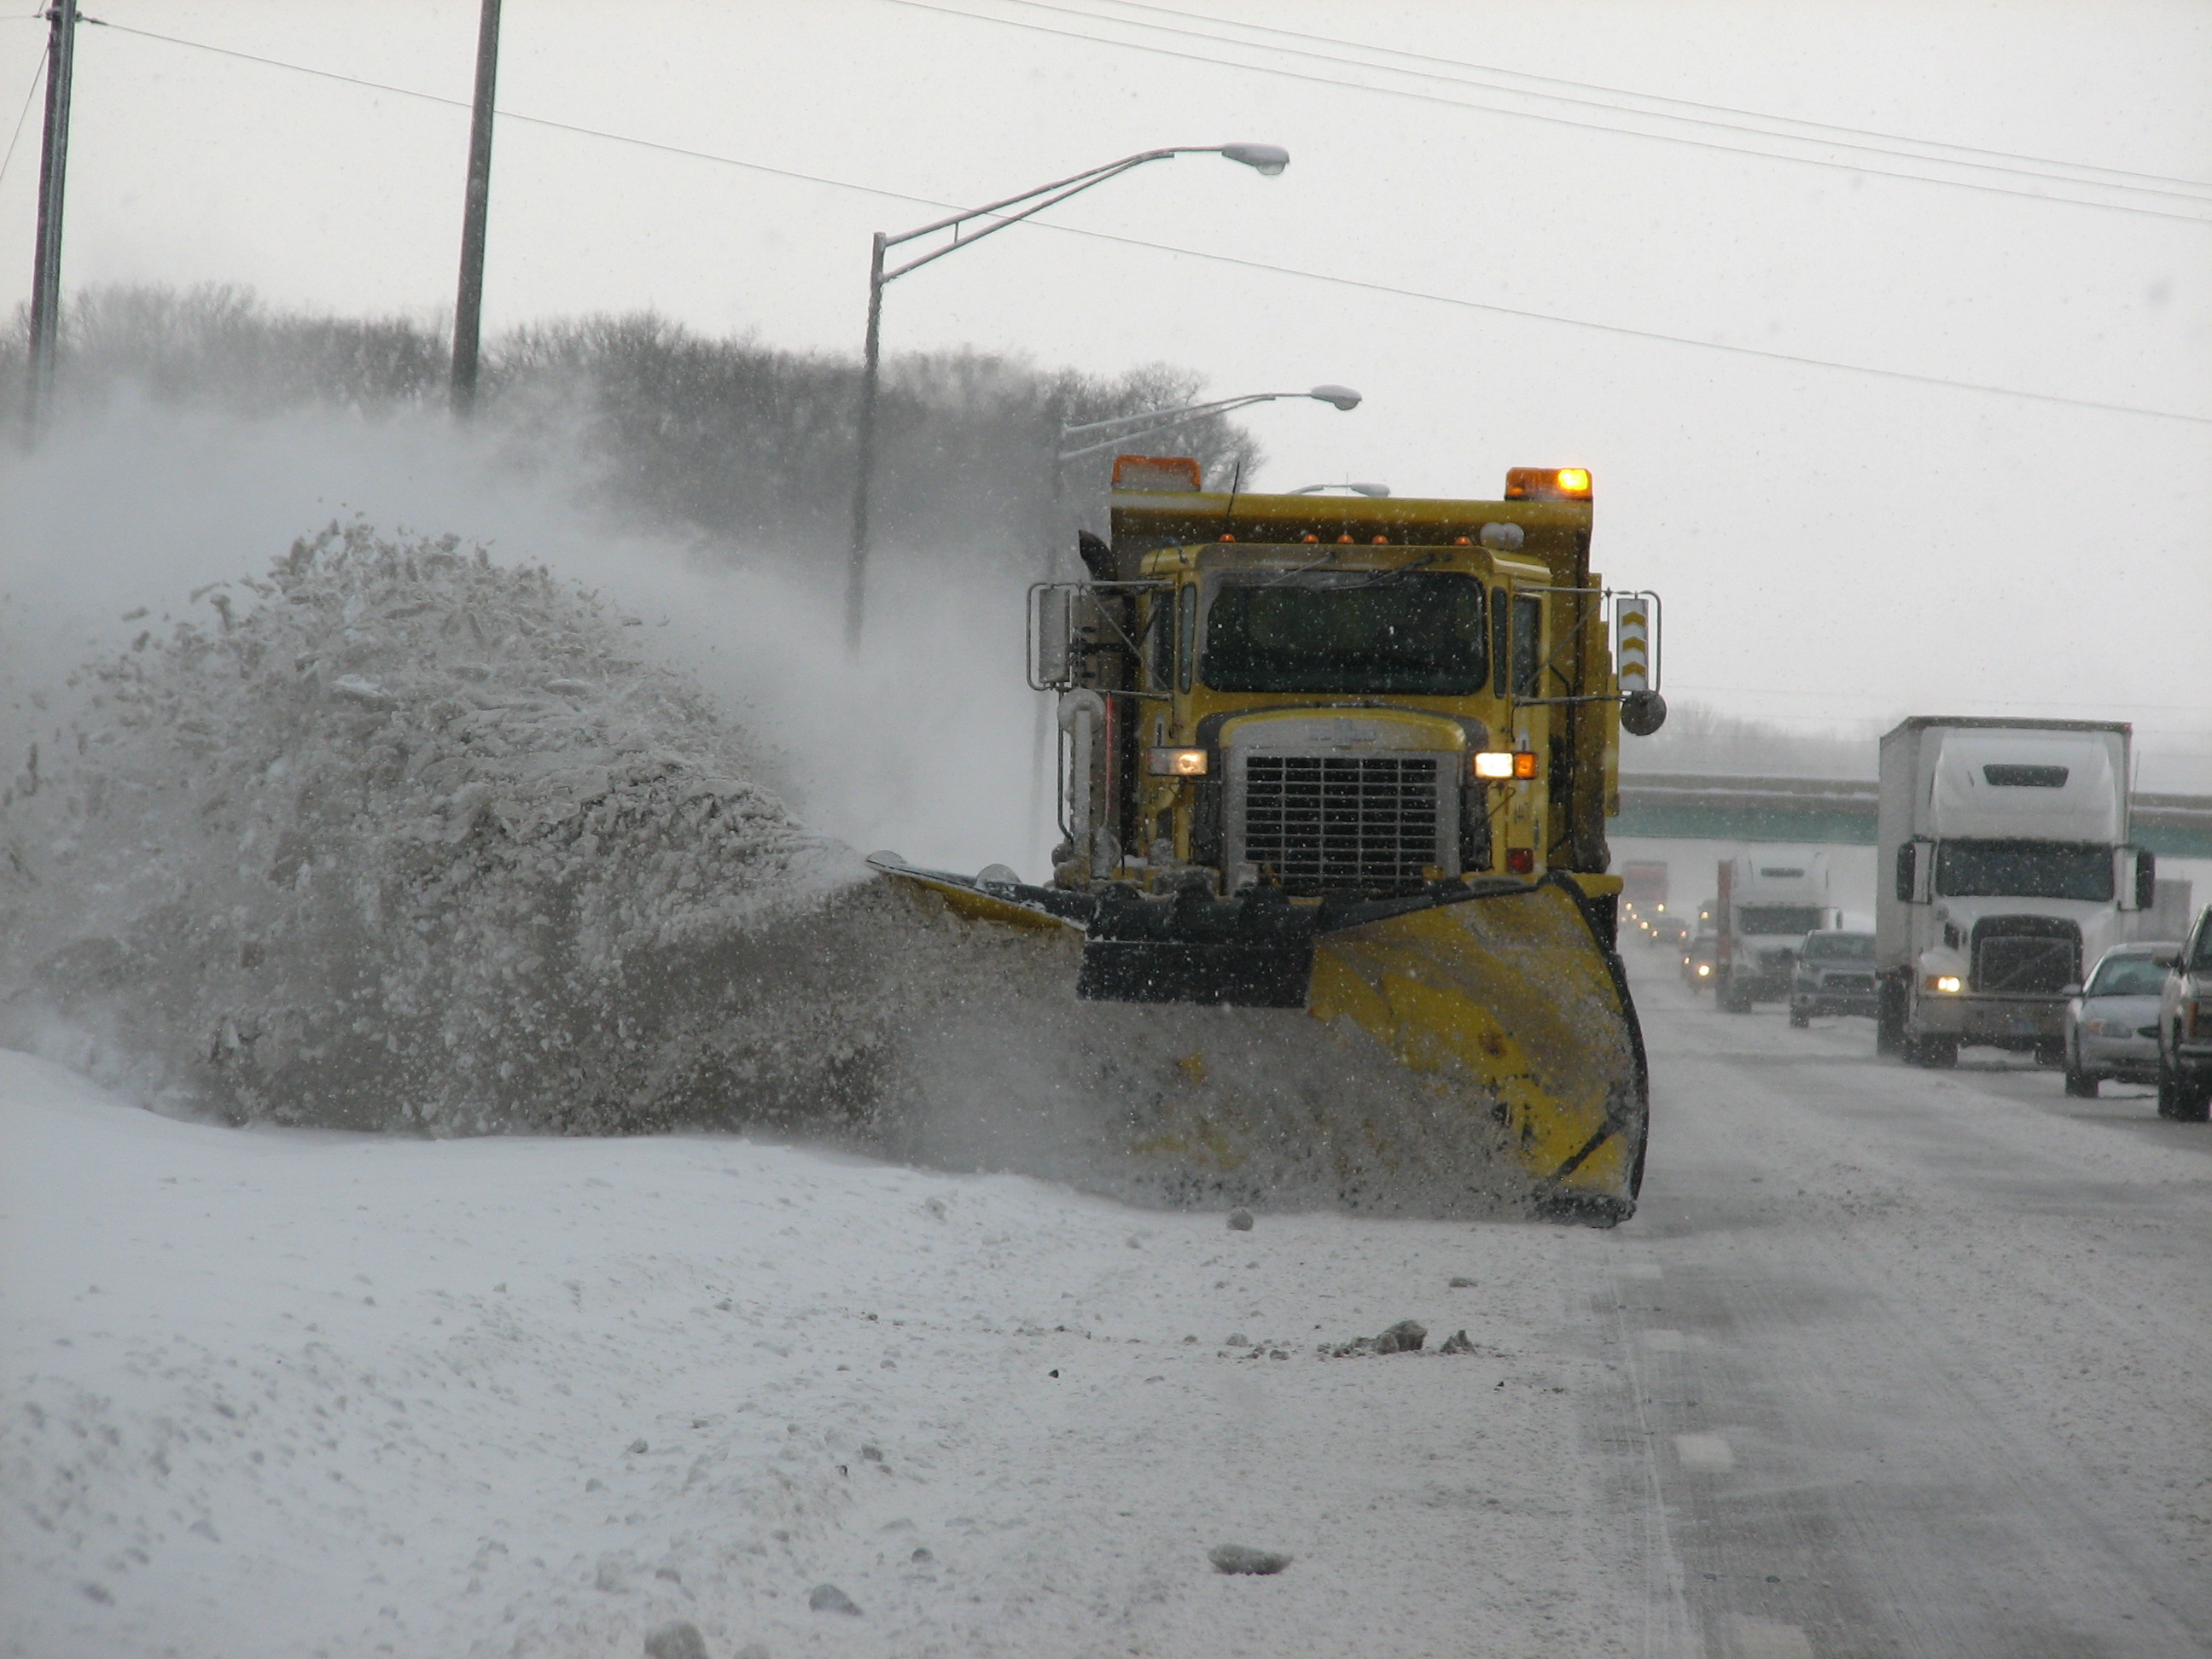 INDOT: Winter Operations